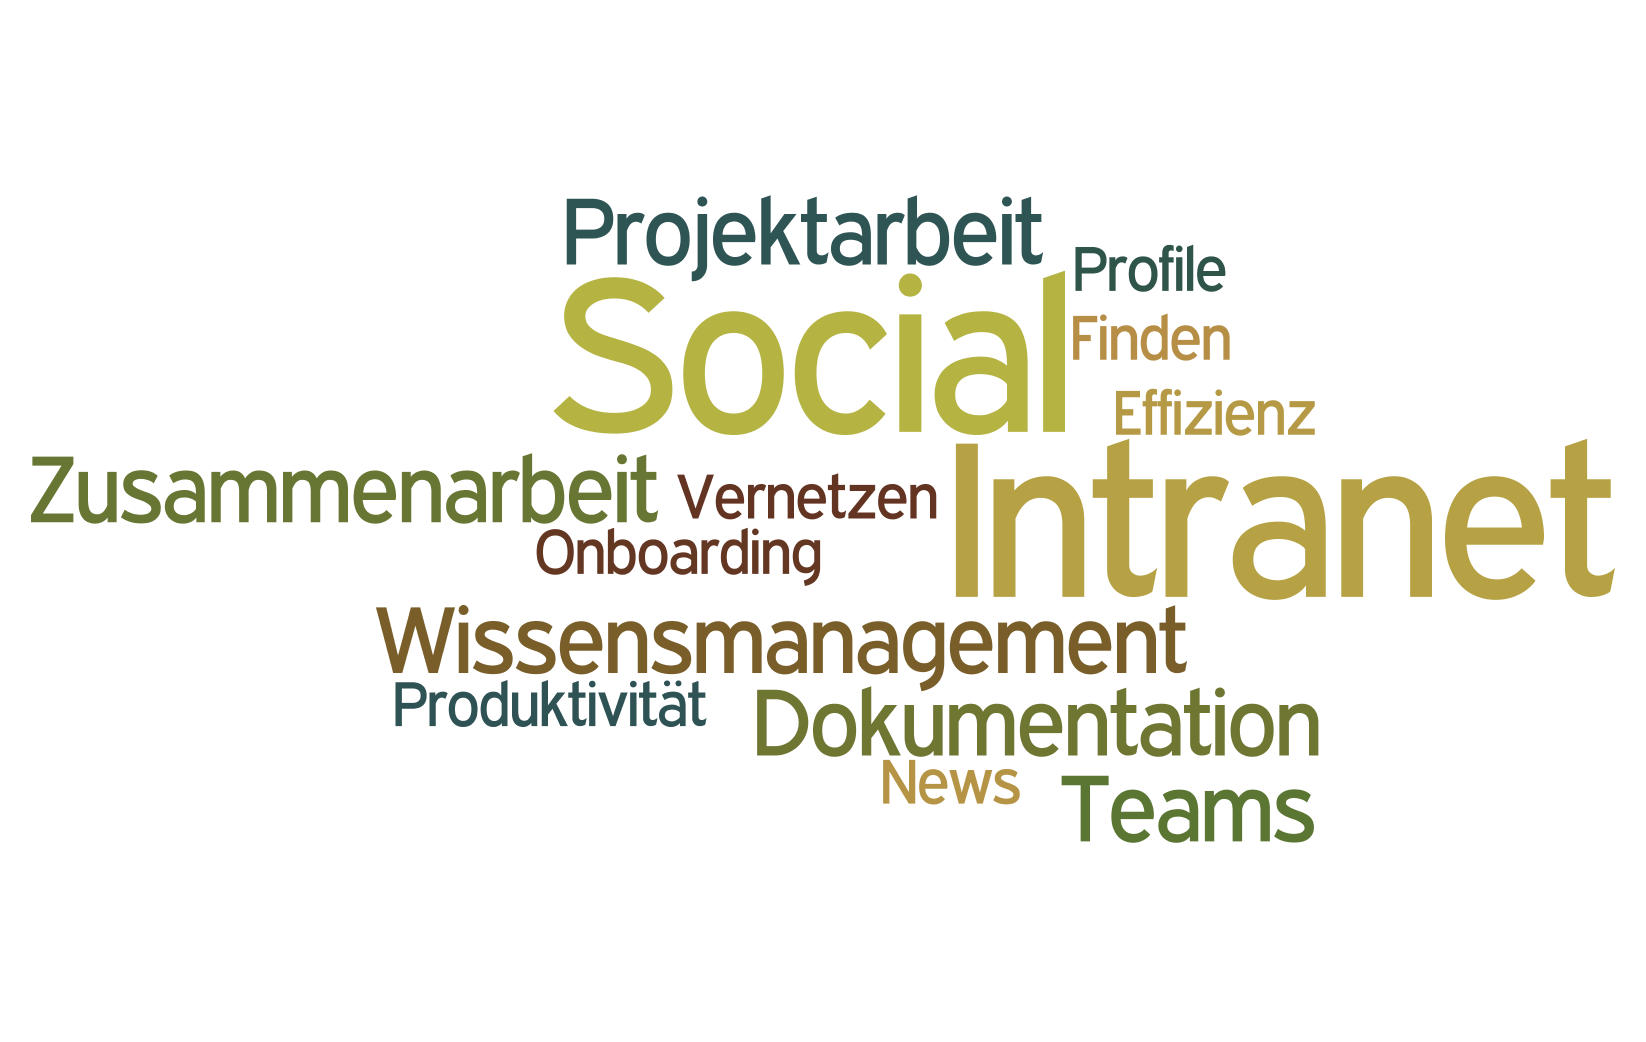 social-intranet-tagcloud